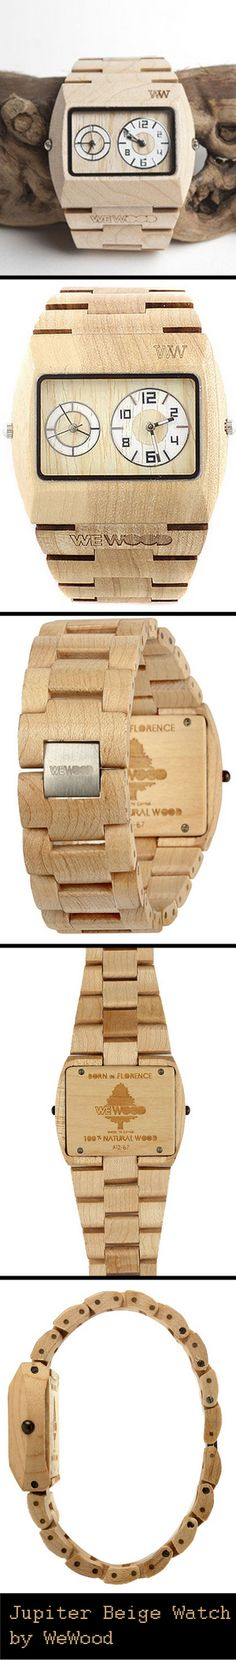 The Jupiter Beige Watch is made from 100% Wood, is hypo-allergenic and completely free of toxic chemicals. | L'orologio Jupiter, realizzato al 100% in legno. #interesting #particular